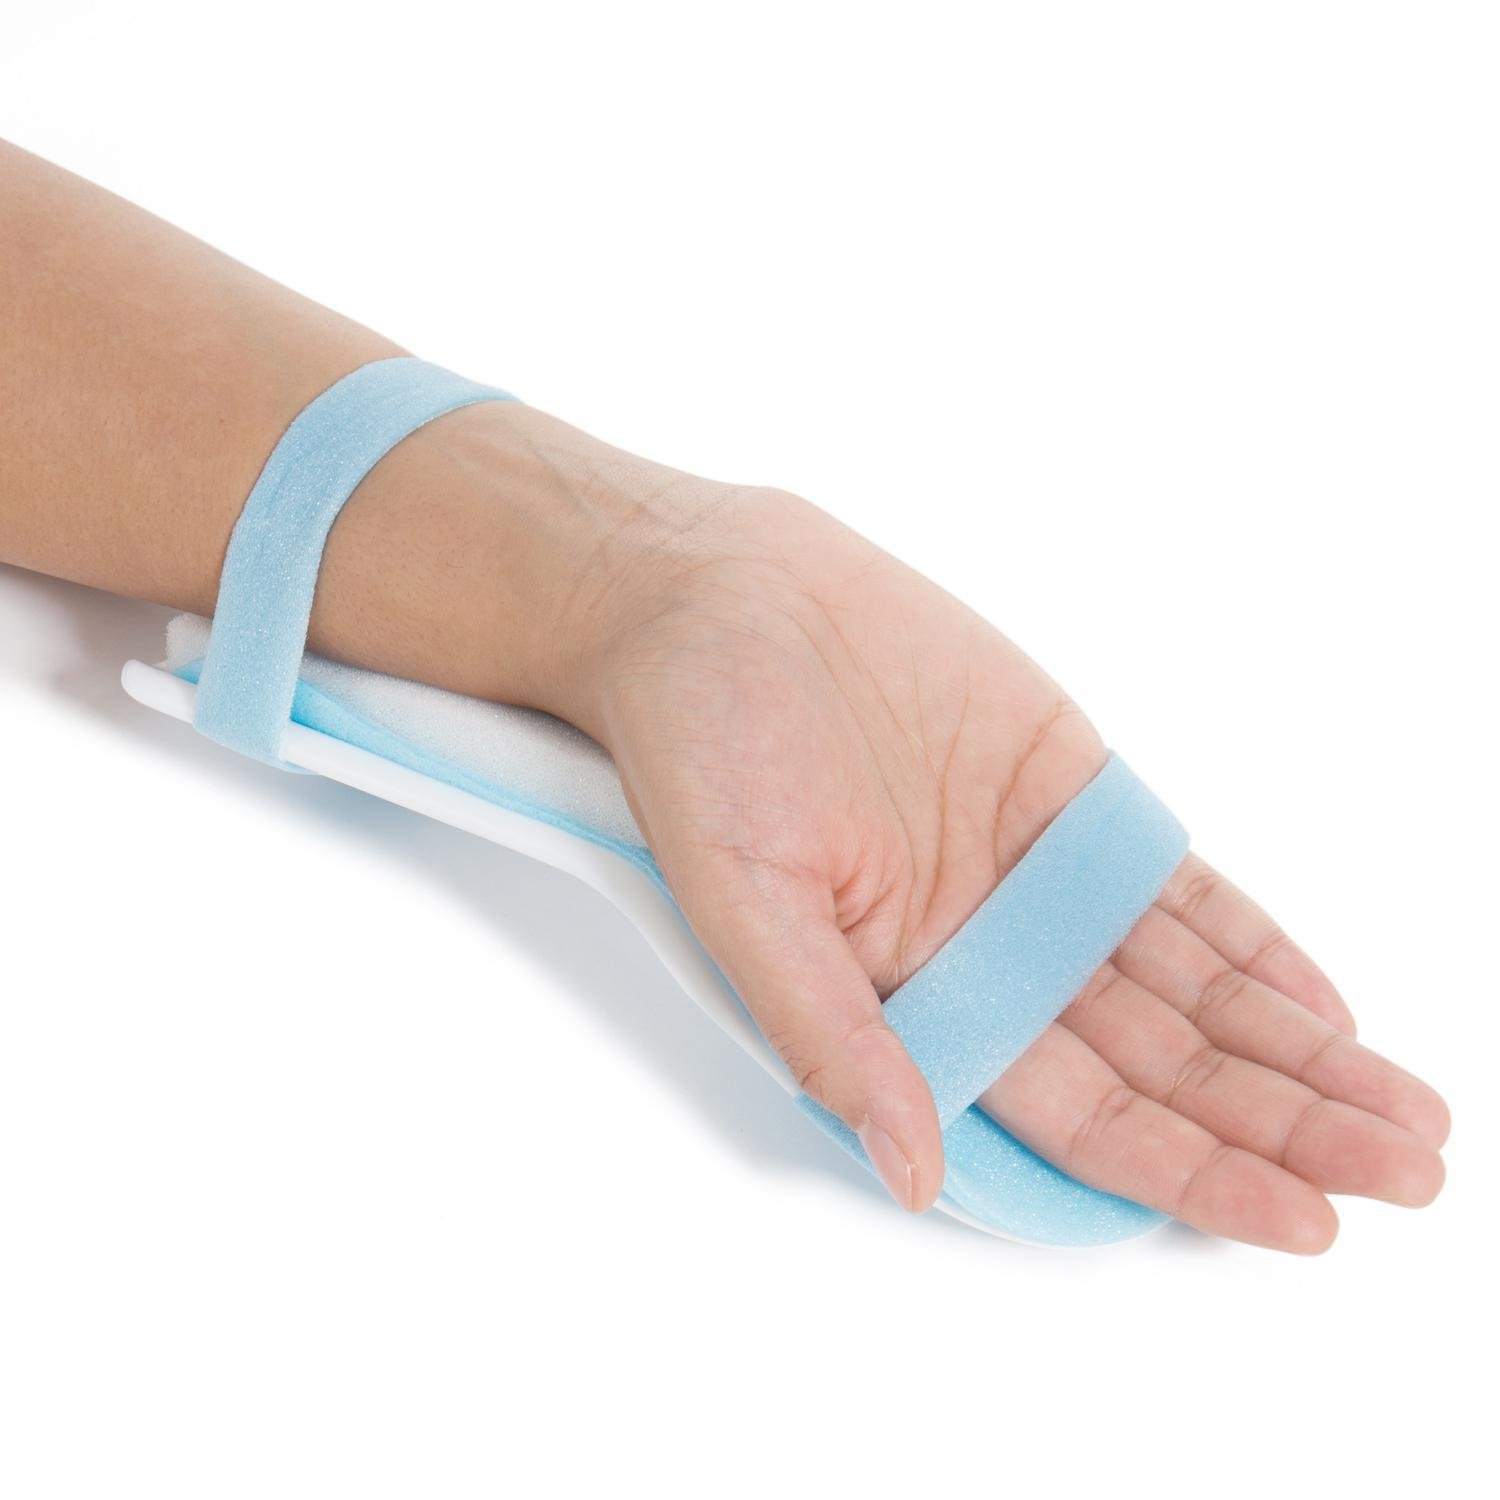 Halyard Health 29980 HAND-AID Arterial Wrist Support, I.V. Therapy, Adult (Case of 20) by Halyard Health (Image #2)